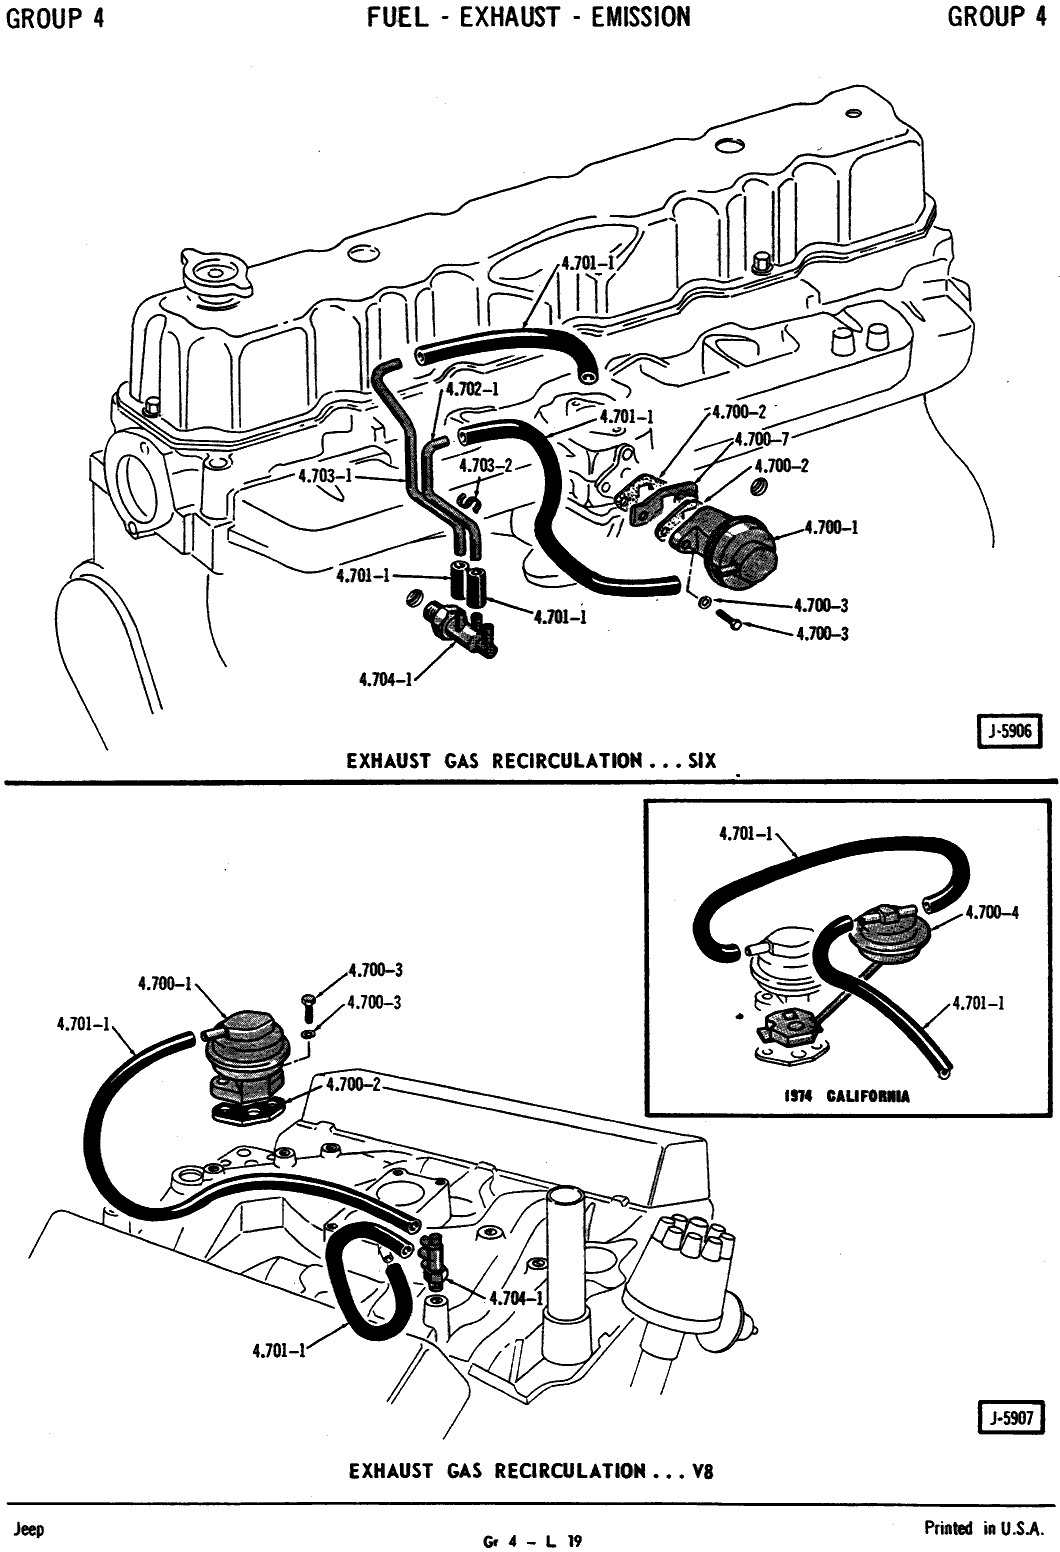 1979 Jeep Cj7 Alternator Wiring Diagram : 39 Wiring